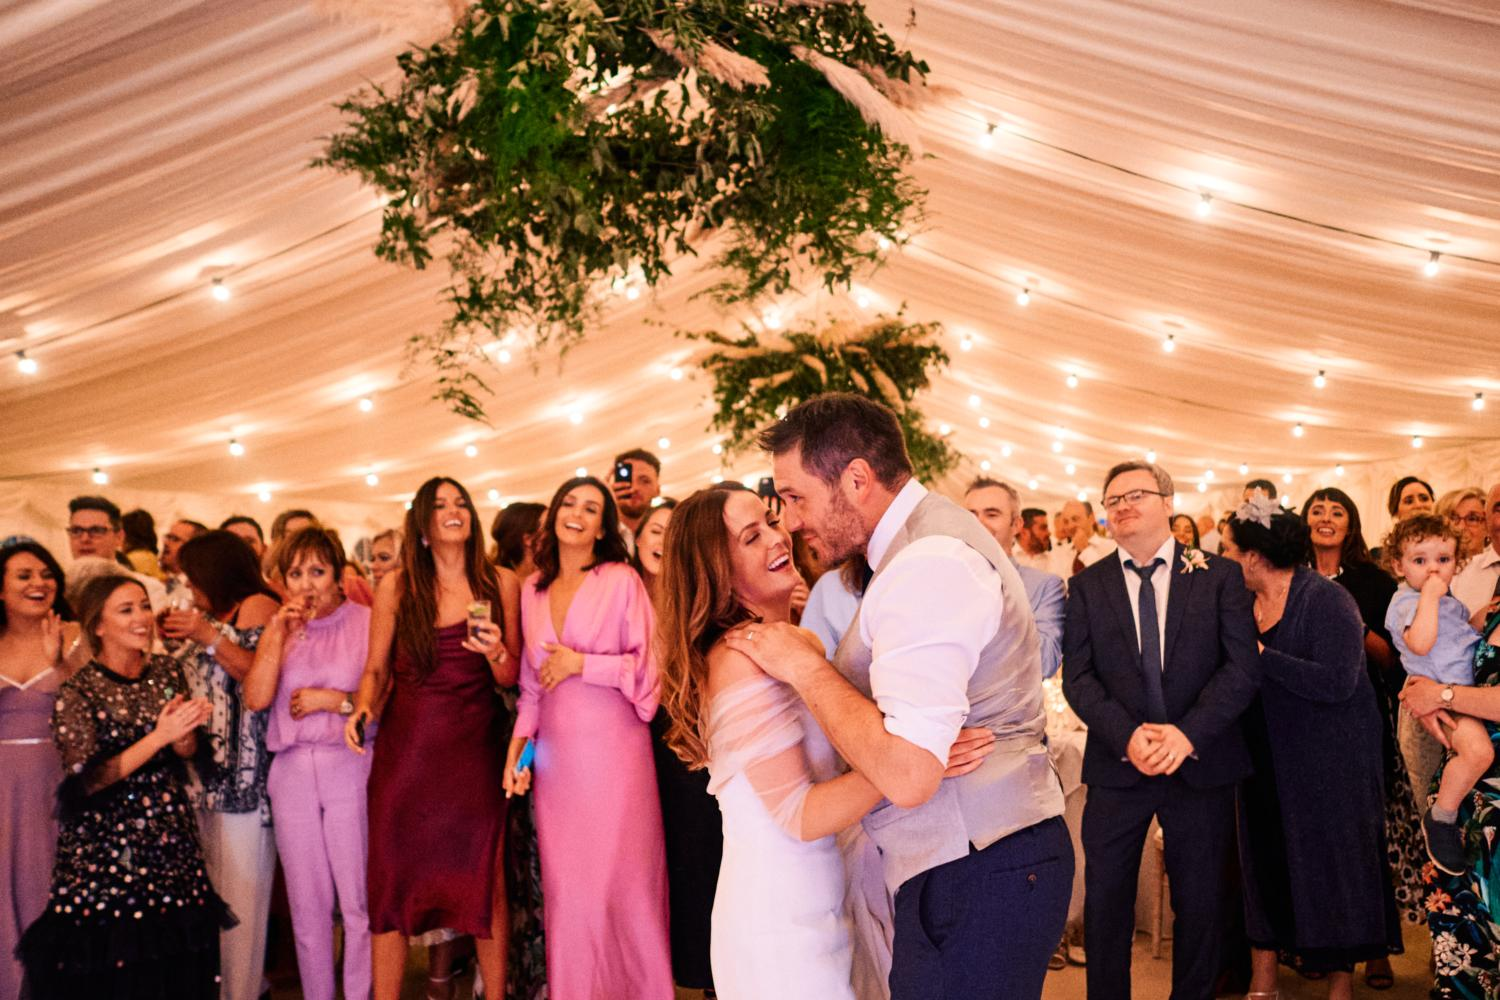 Guests watching the first dance in a marquee